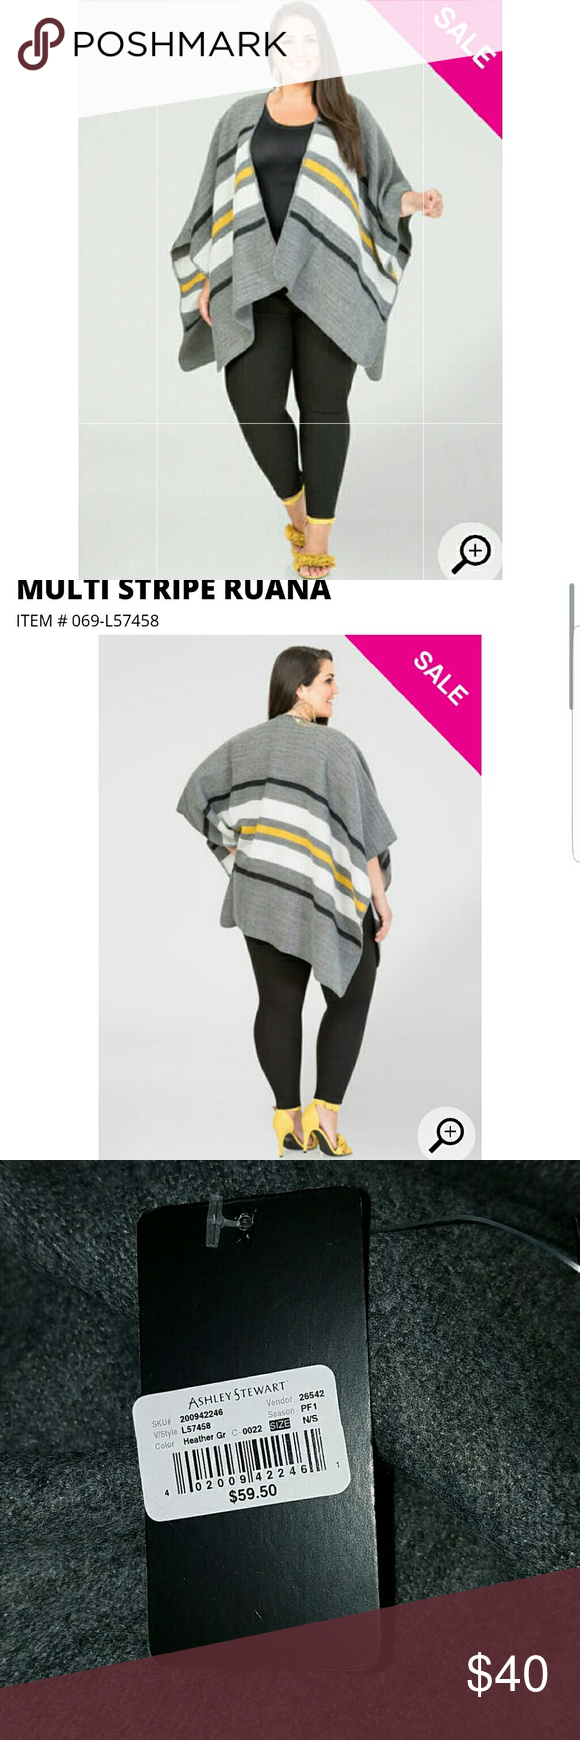 Poncho Cozy up in this chic ruana. Pair it with dark wash skinnies, a basic cami & bold accessories for a fab look worth talking about. One size. Acrylic. Hand wash cold. Do not bleach. Lay flat to dry. Imported. Ashley Stewart Sweaters Shrugs & Ponchos